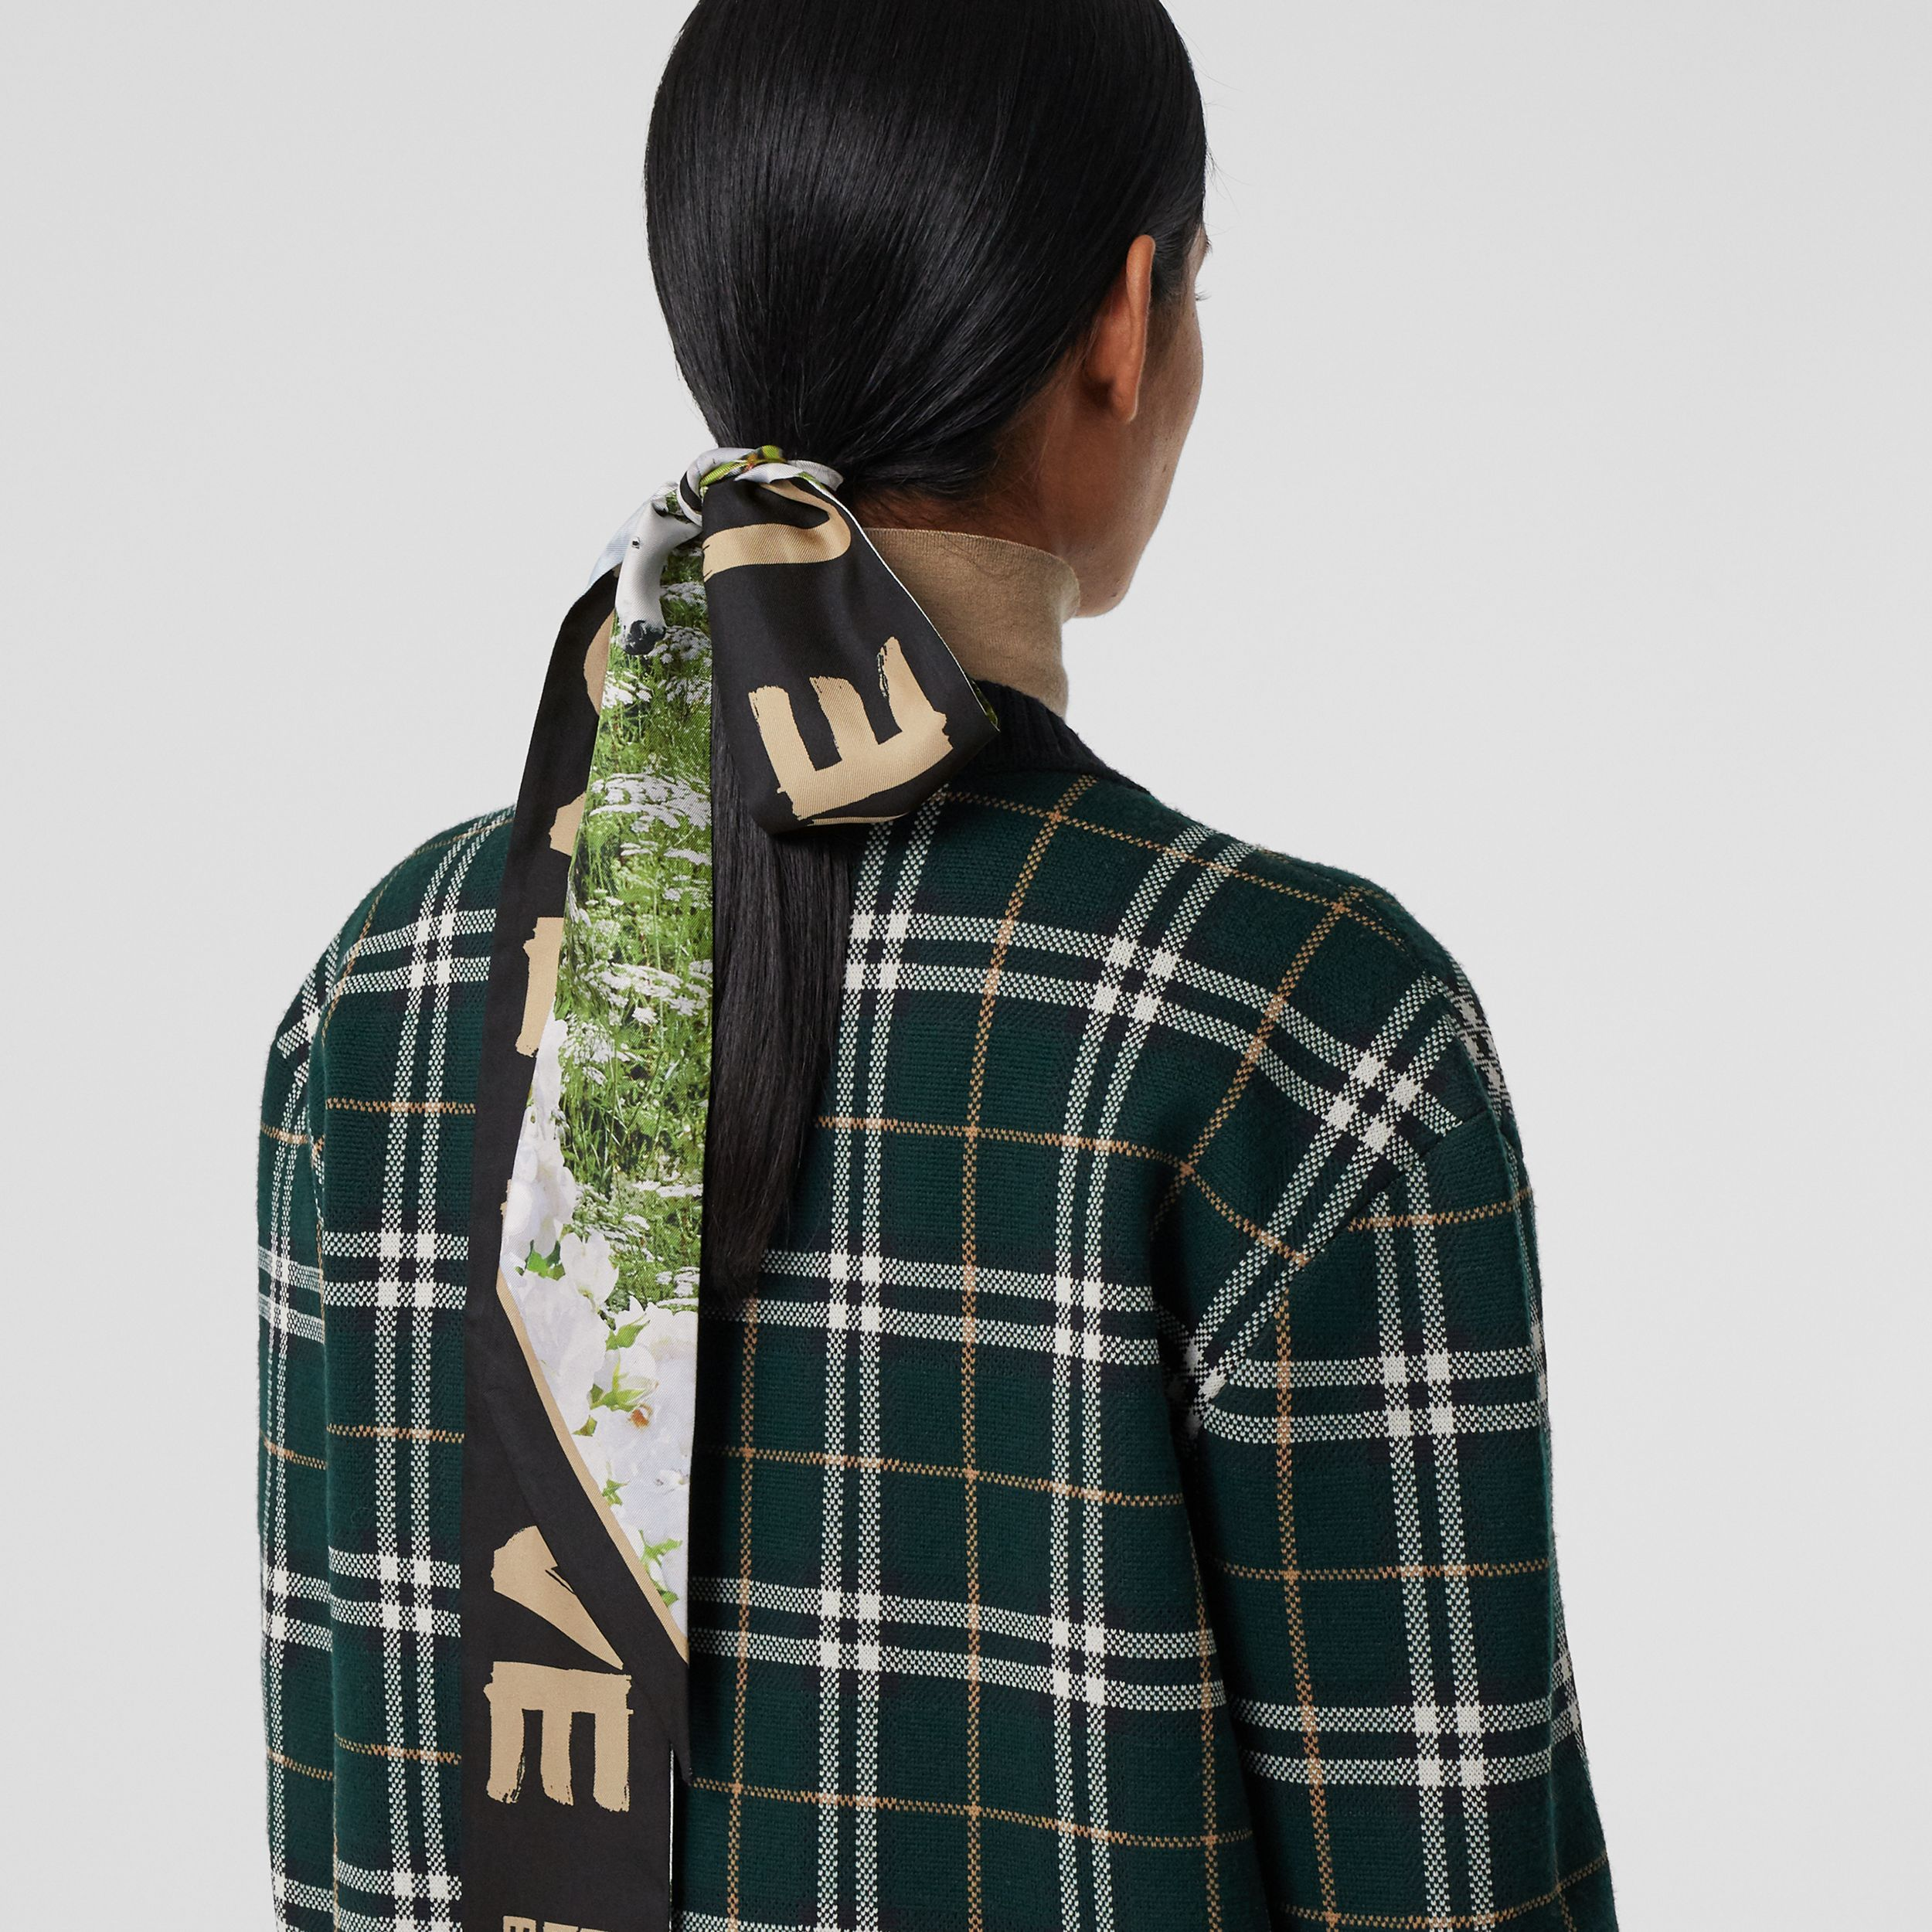 Montage Print Silk Skinny Scarf in Multicolour | Burberry - 3